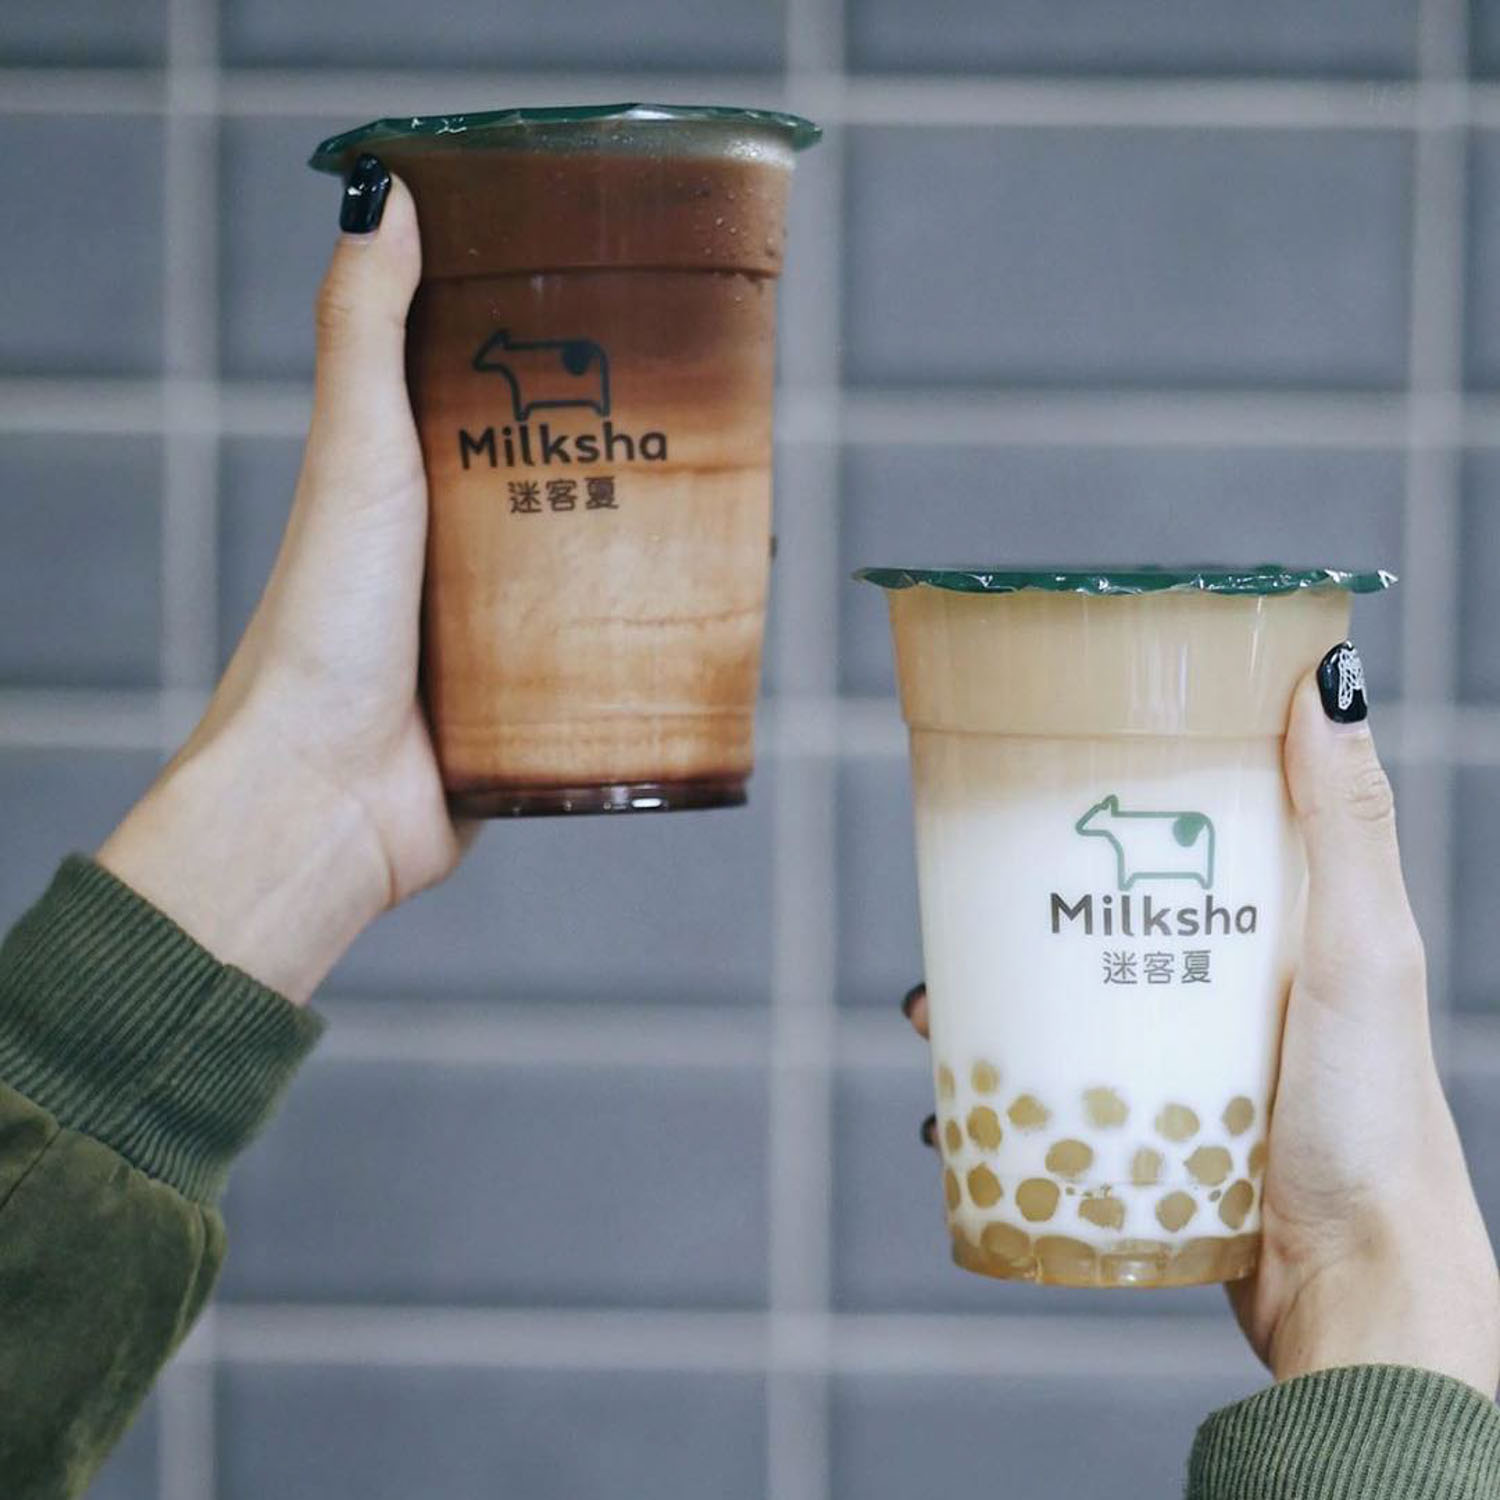 Bubble Tea Shops - Milksha